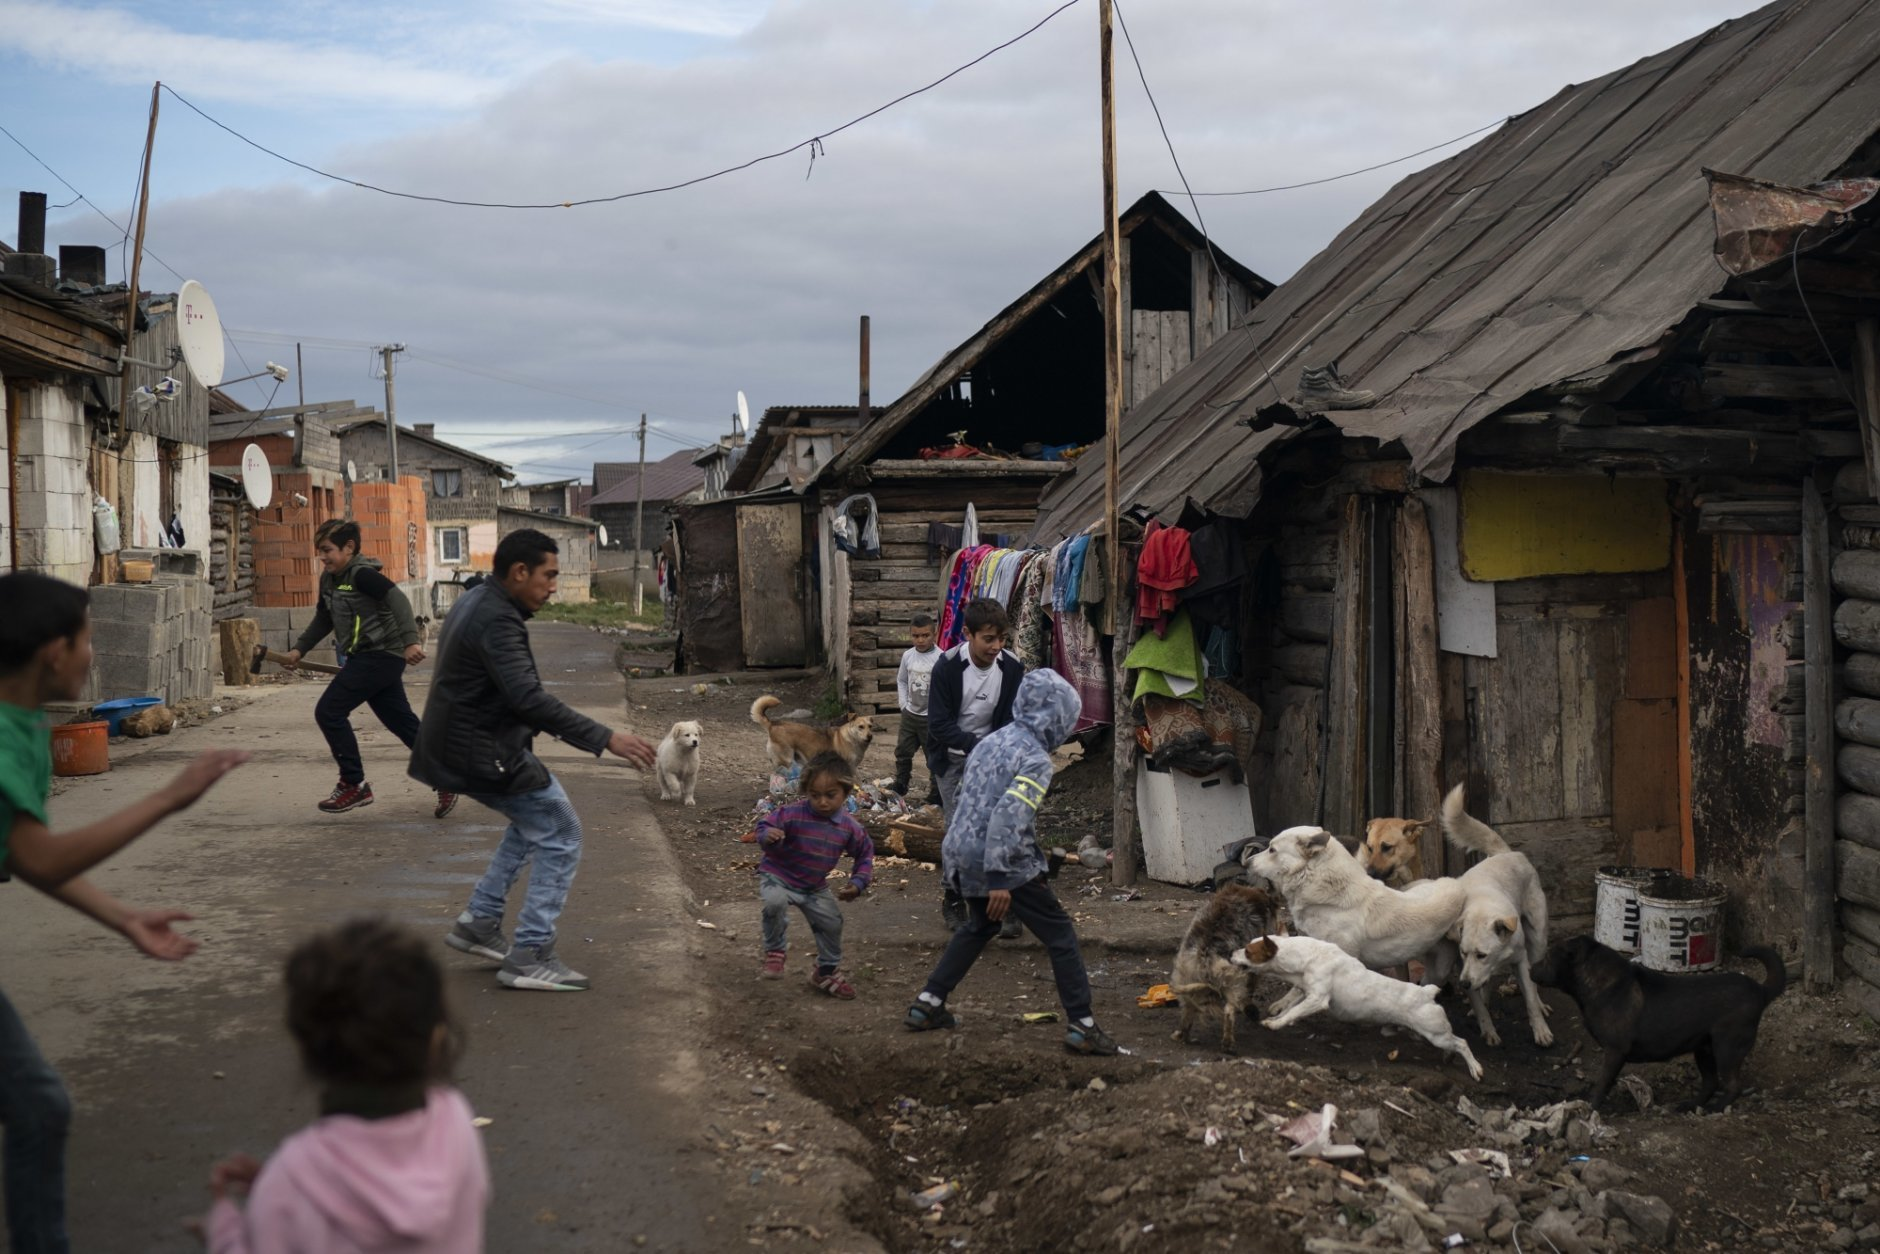 In this Nov. 12, 2018, photo, people run during a dog fight in a village near Kezmarok, Slovakia. An investigation by The Associated Press has found that women and their newborns in Slovakia are routinely, unjustifiably and illegally detained in hospitals across the European Union country. (AP Photo/Felipe Dana)